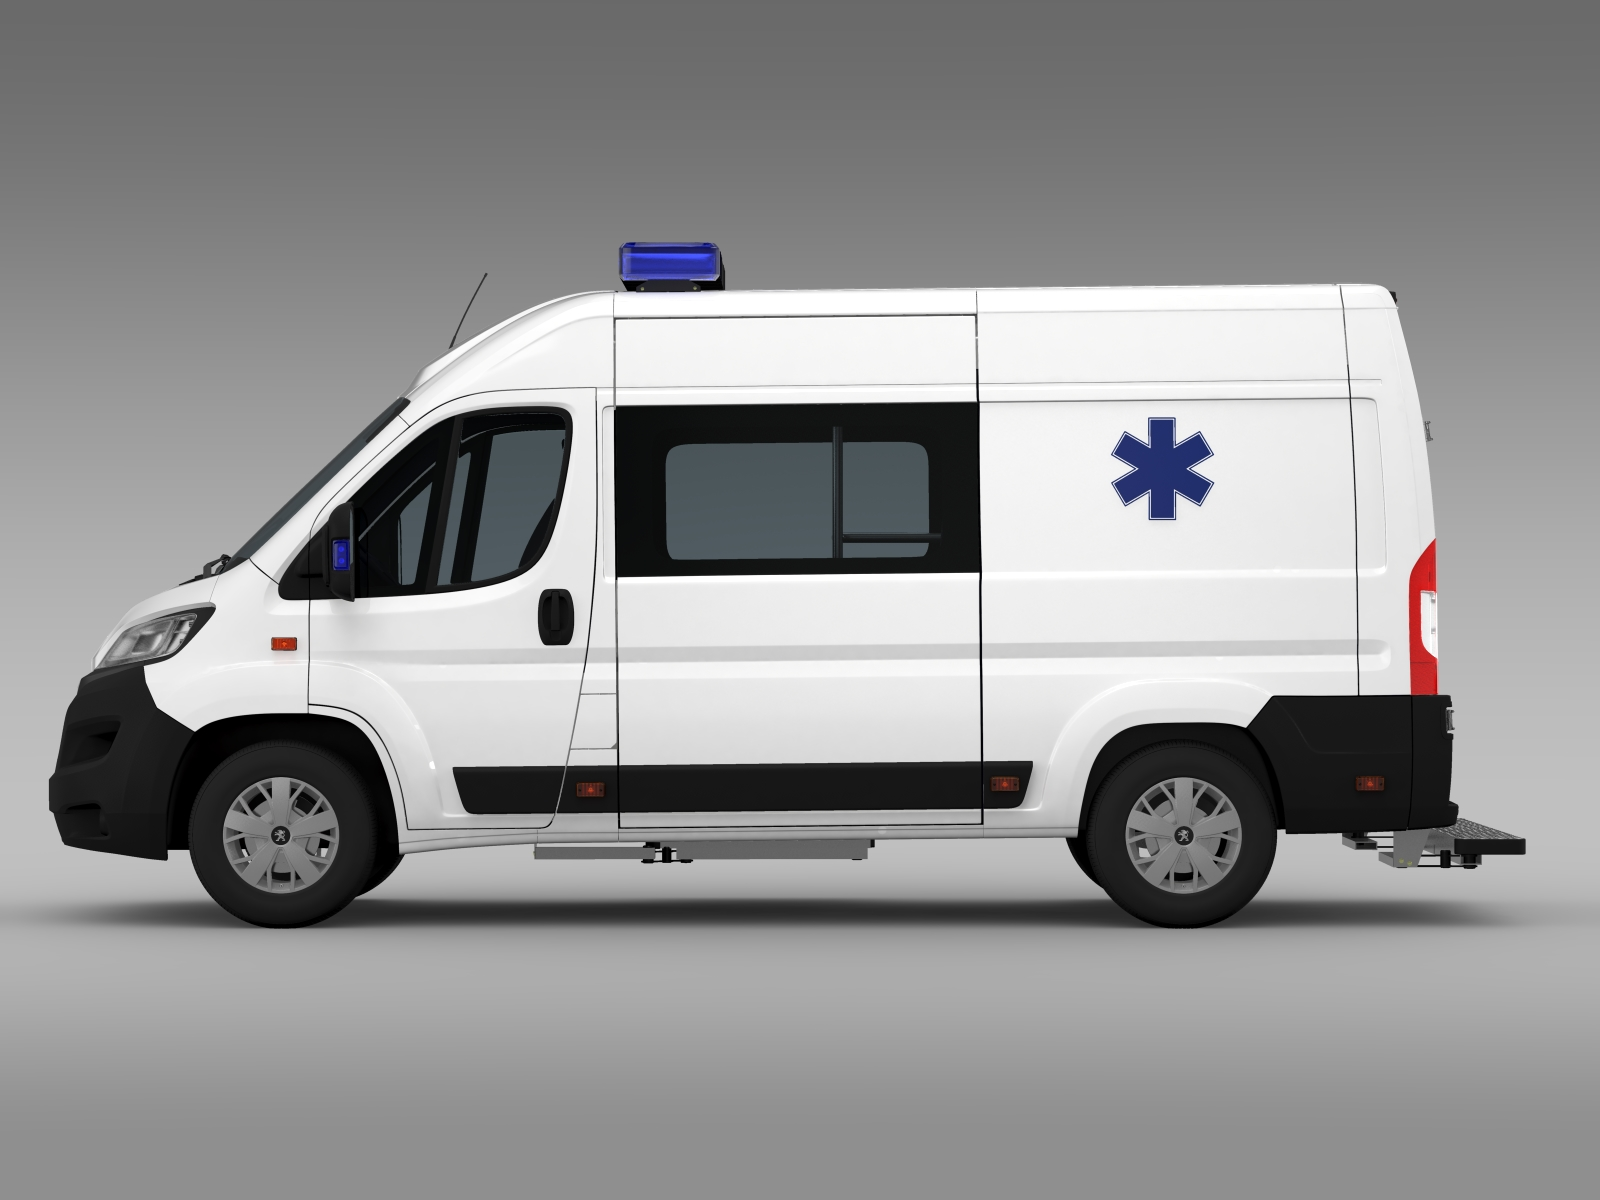 peugeot boxer van ambulance 2015 3d model vehicles 3d models 3d 3ds max fbx c4d lwo lws lw ma mb. Black Bedroom Furniture Sets. Home Design Ideas